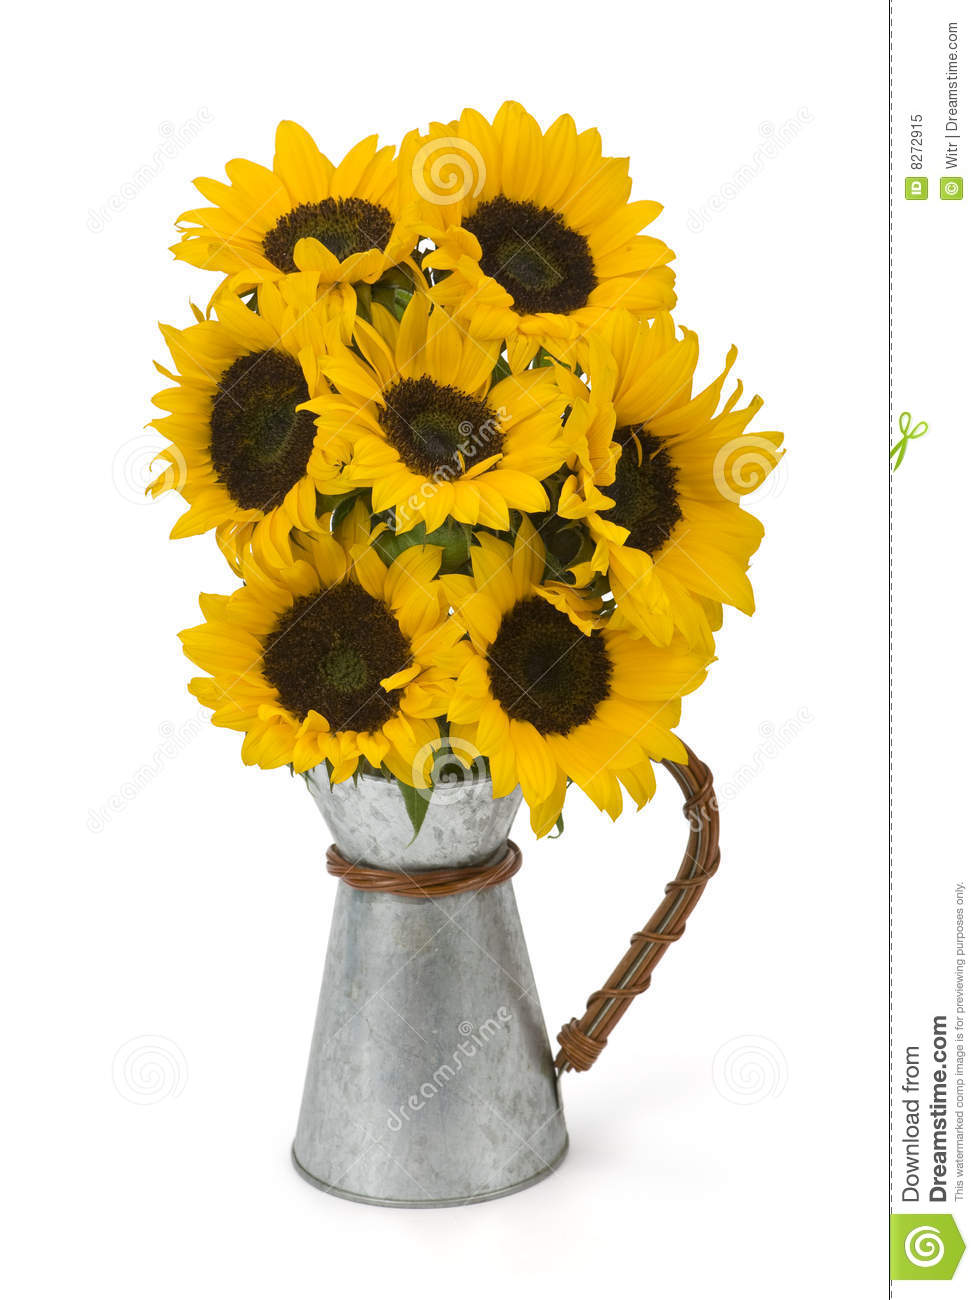 Bunch Of Sunflowers Royalty Free Stock Photo Image 8272915